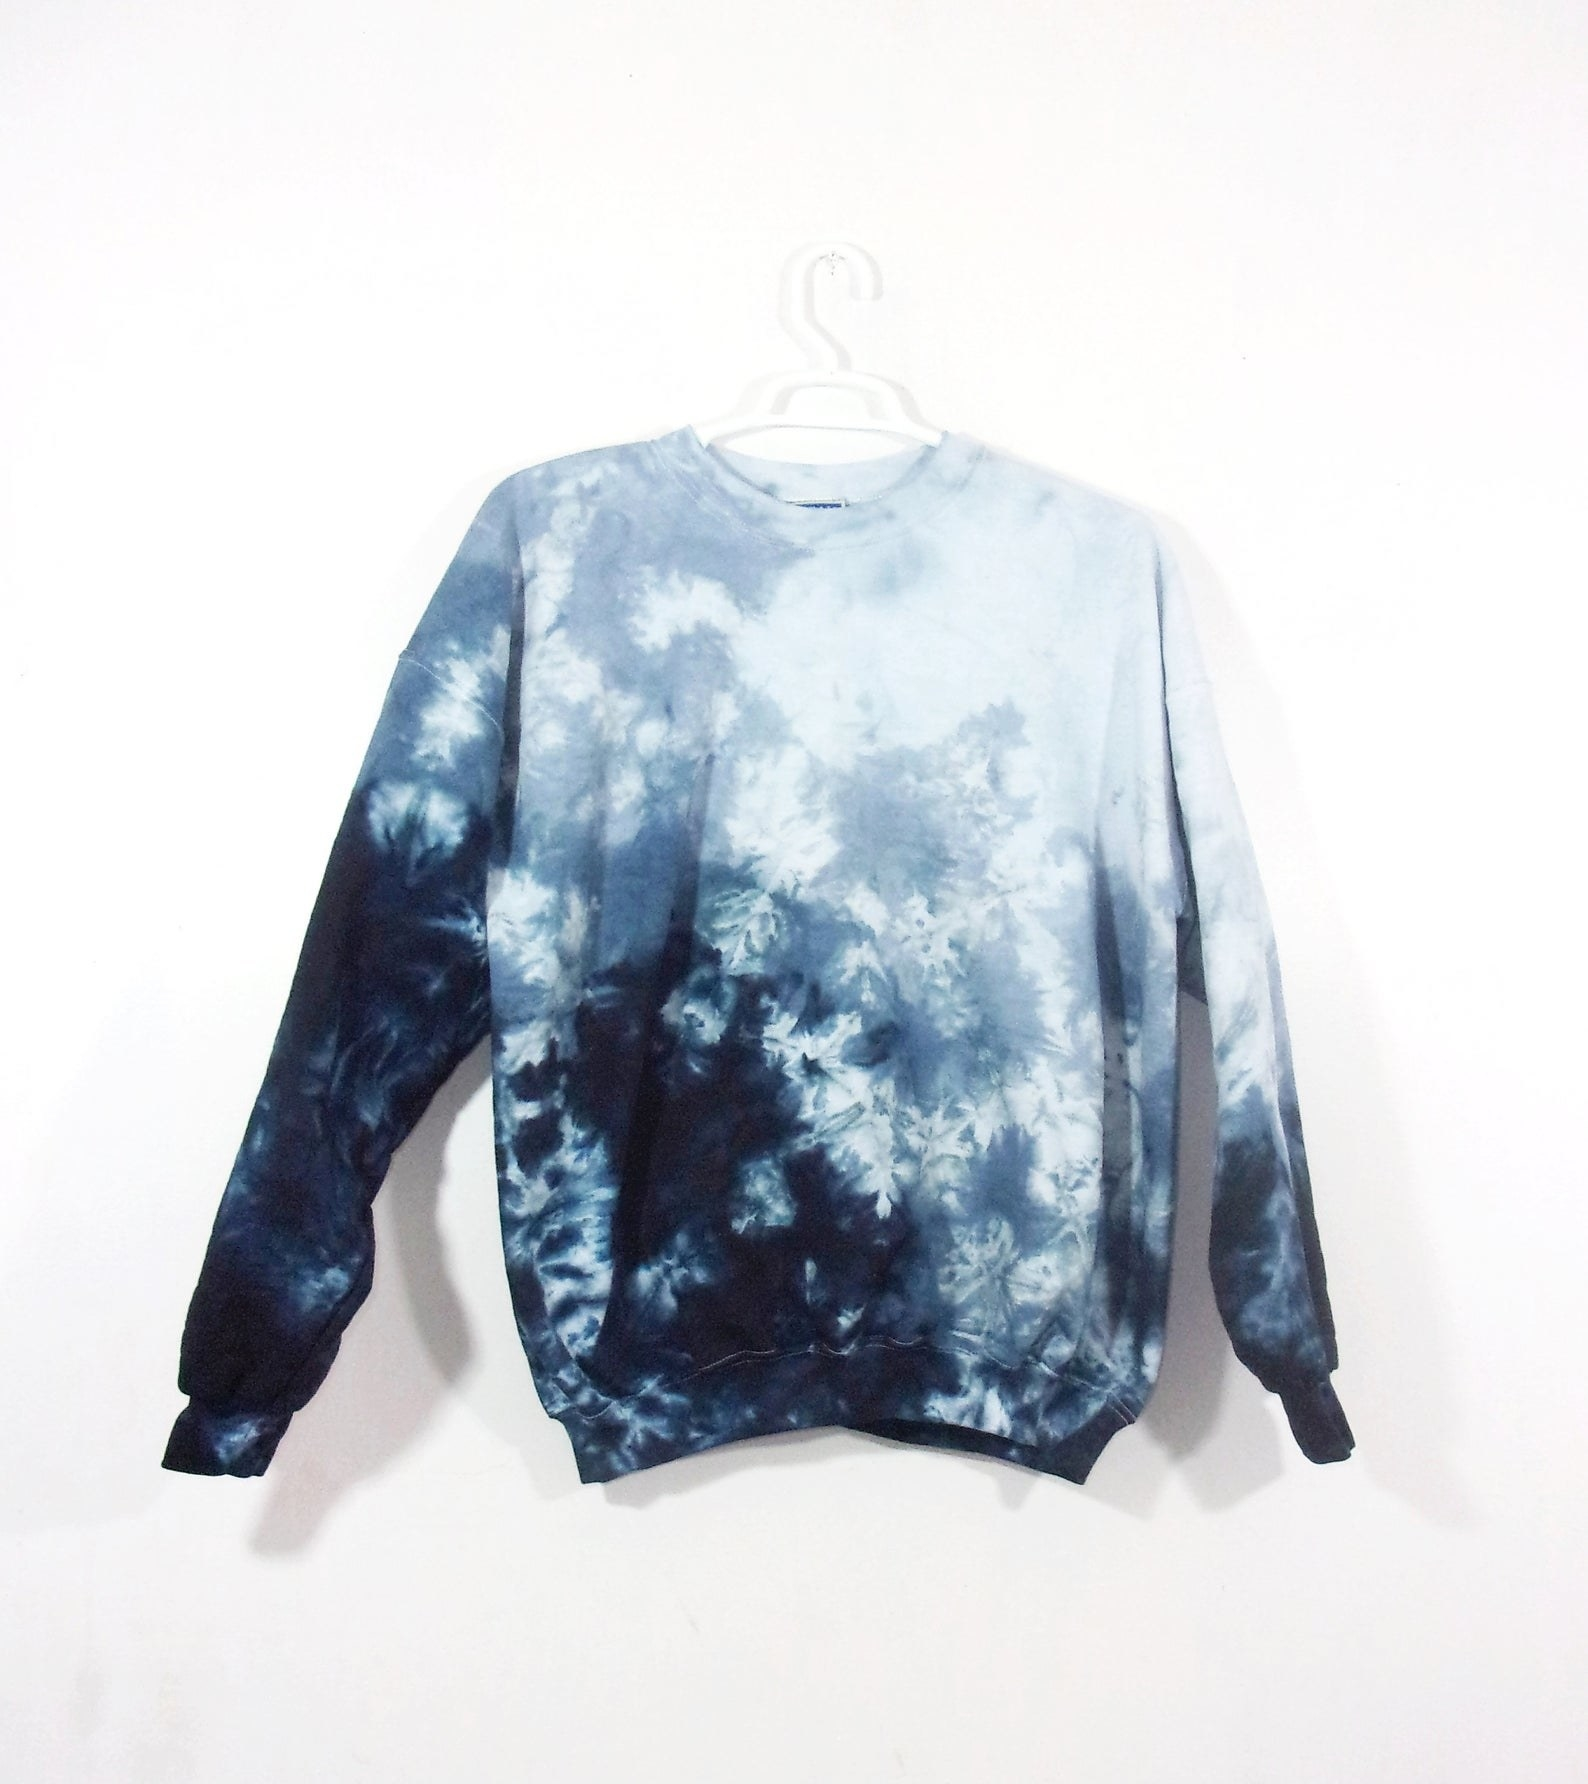 A pullover sweater hand-dyed in a navy blue to light blue gradient